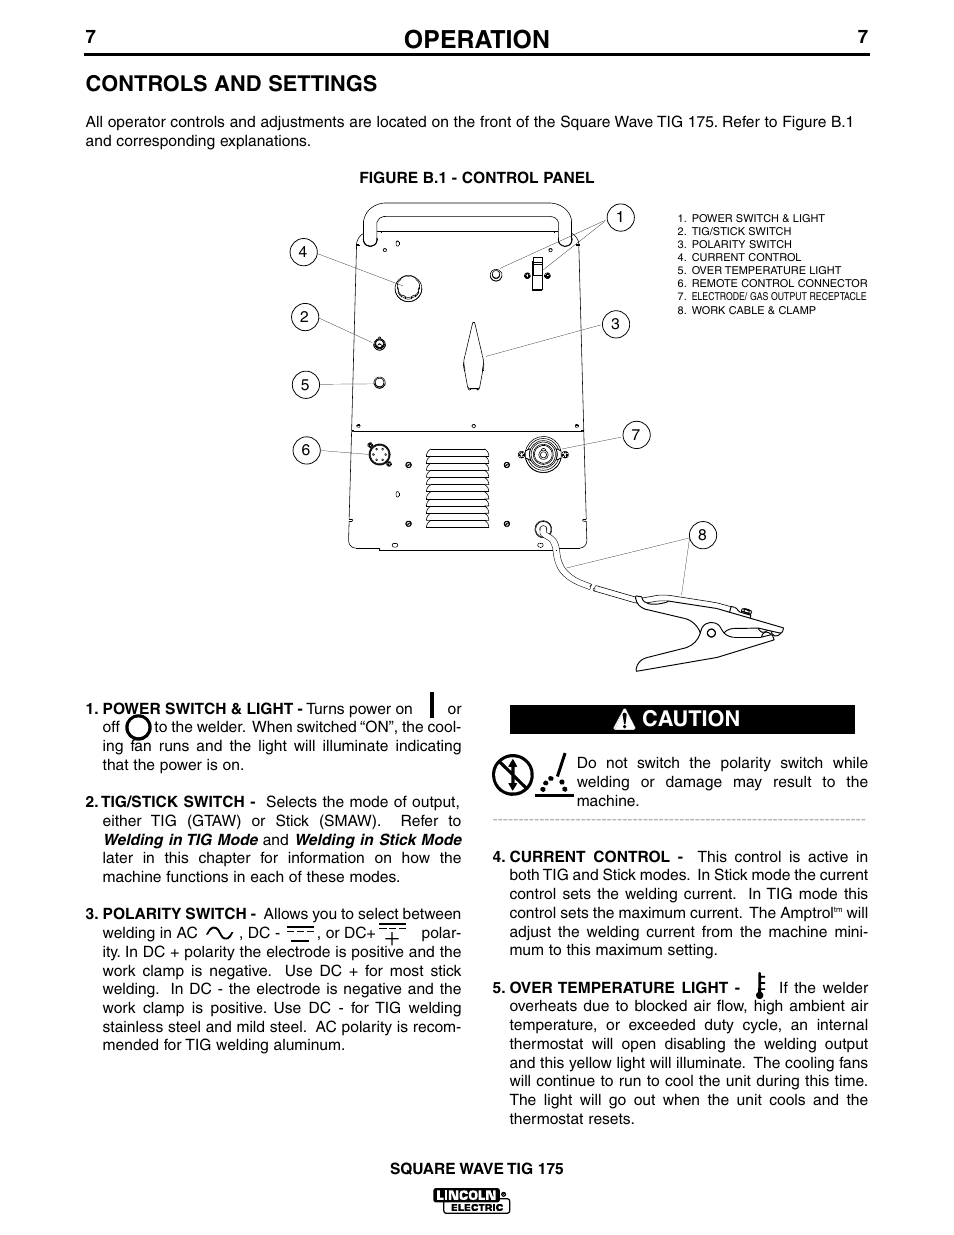 medium resolution of operation controls and settings caution lincoln electric im565 square wave tig 175 user manual page 14 32